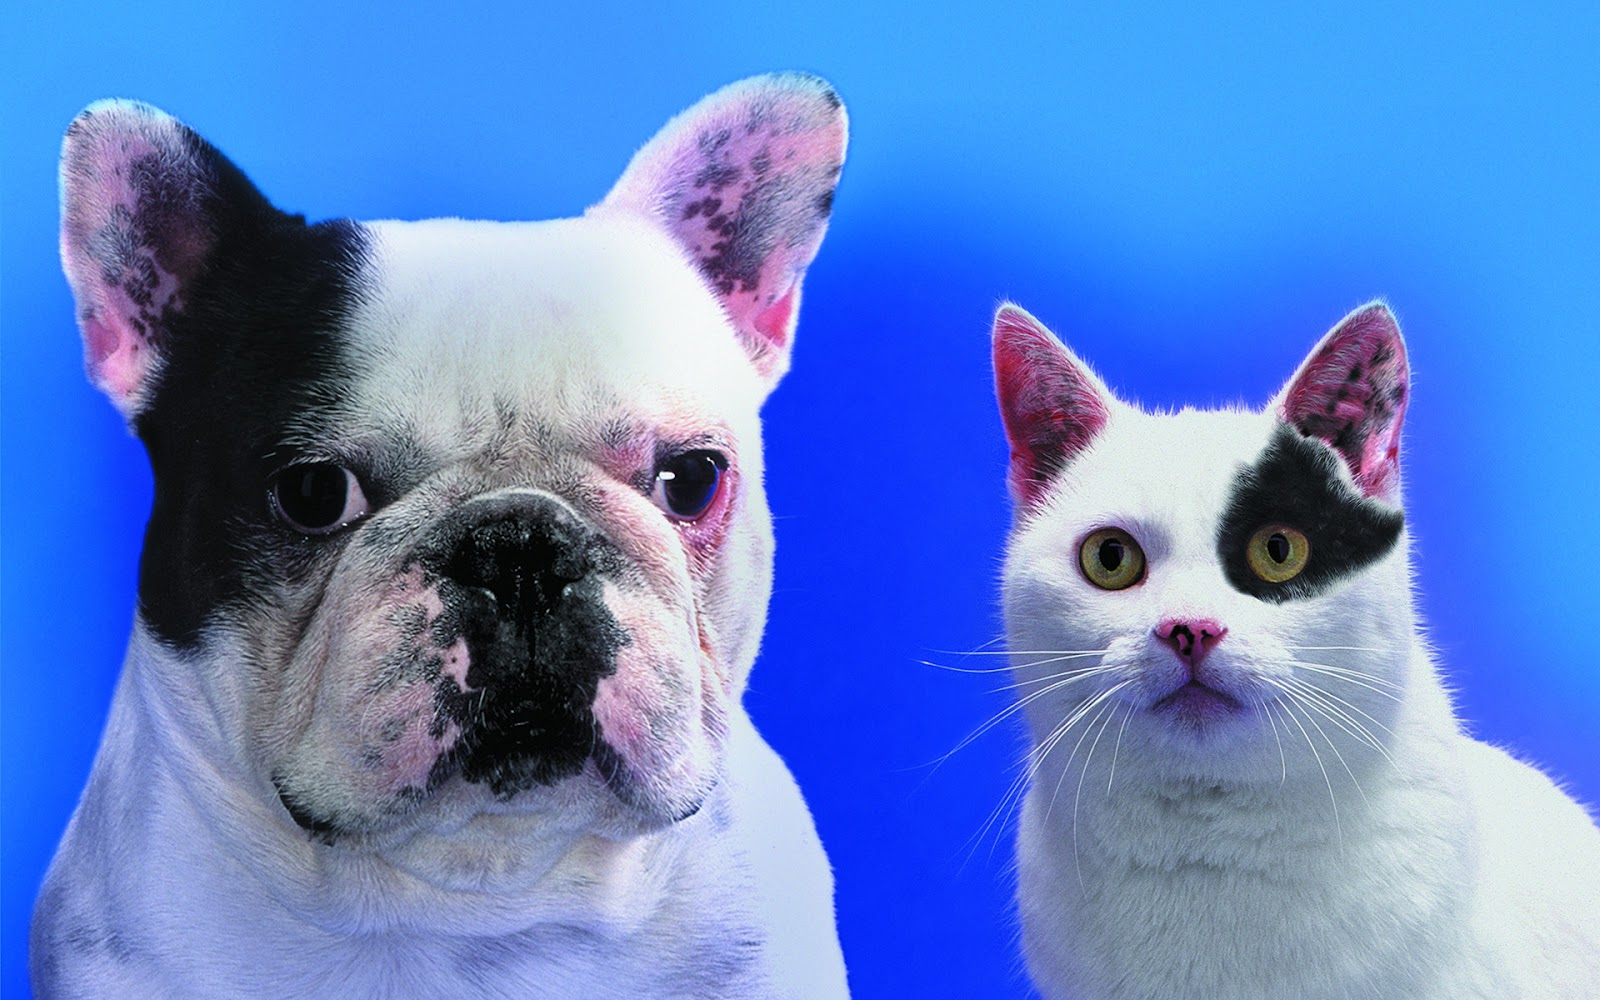 Cats And Dogs Wallpapers WallpapersInk HD Cute Puppies Kittens On The App Store 1600x1000